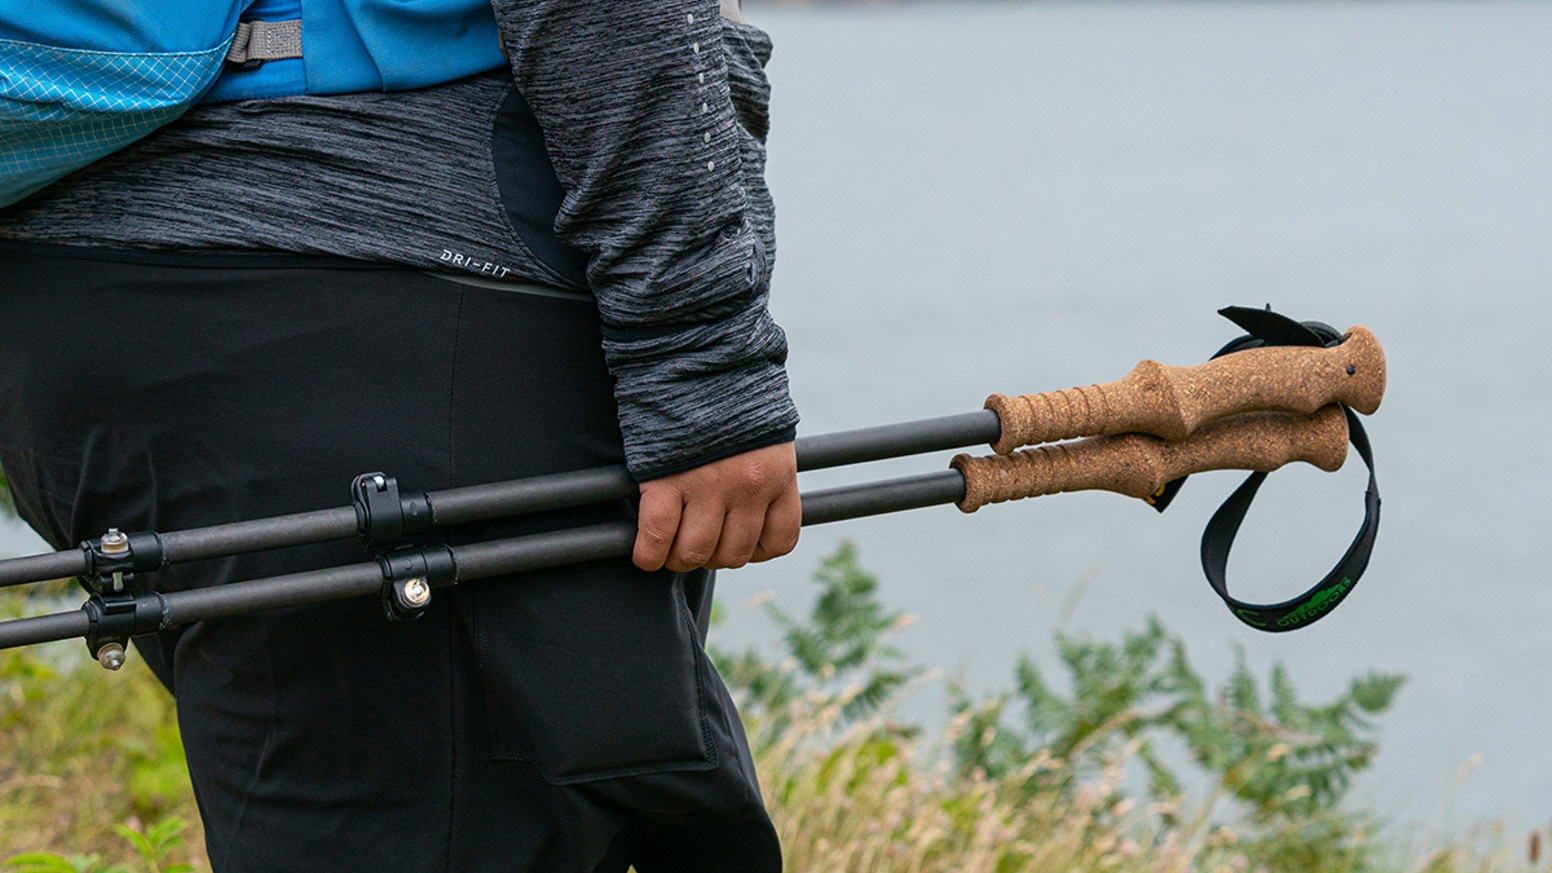 Made in the USA, fully repairable in the field, minimalist design, durable and light telescopic trekking poles